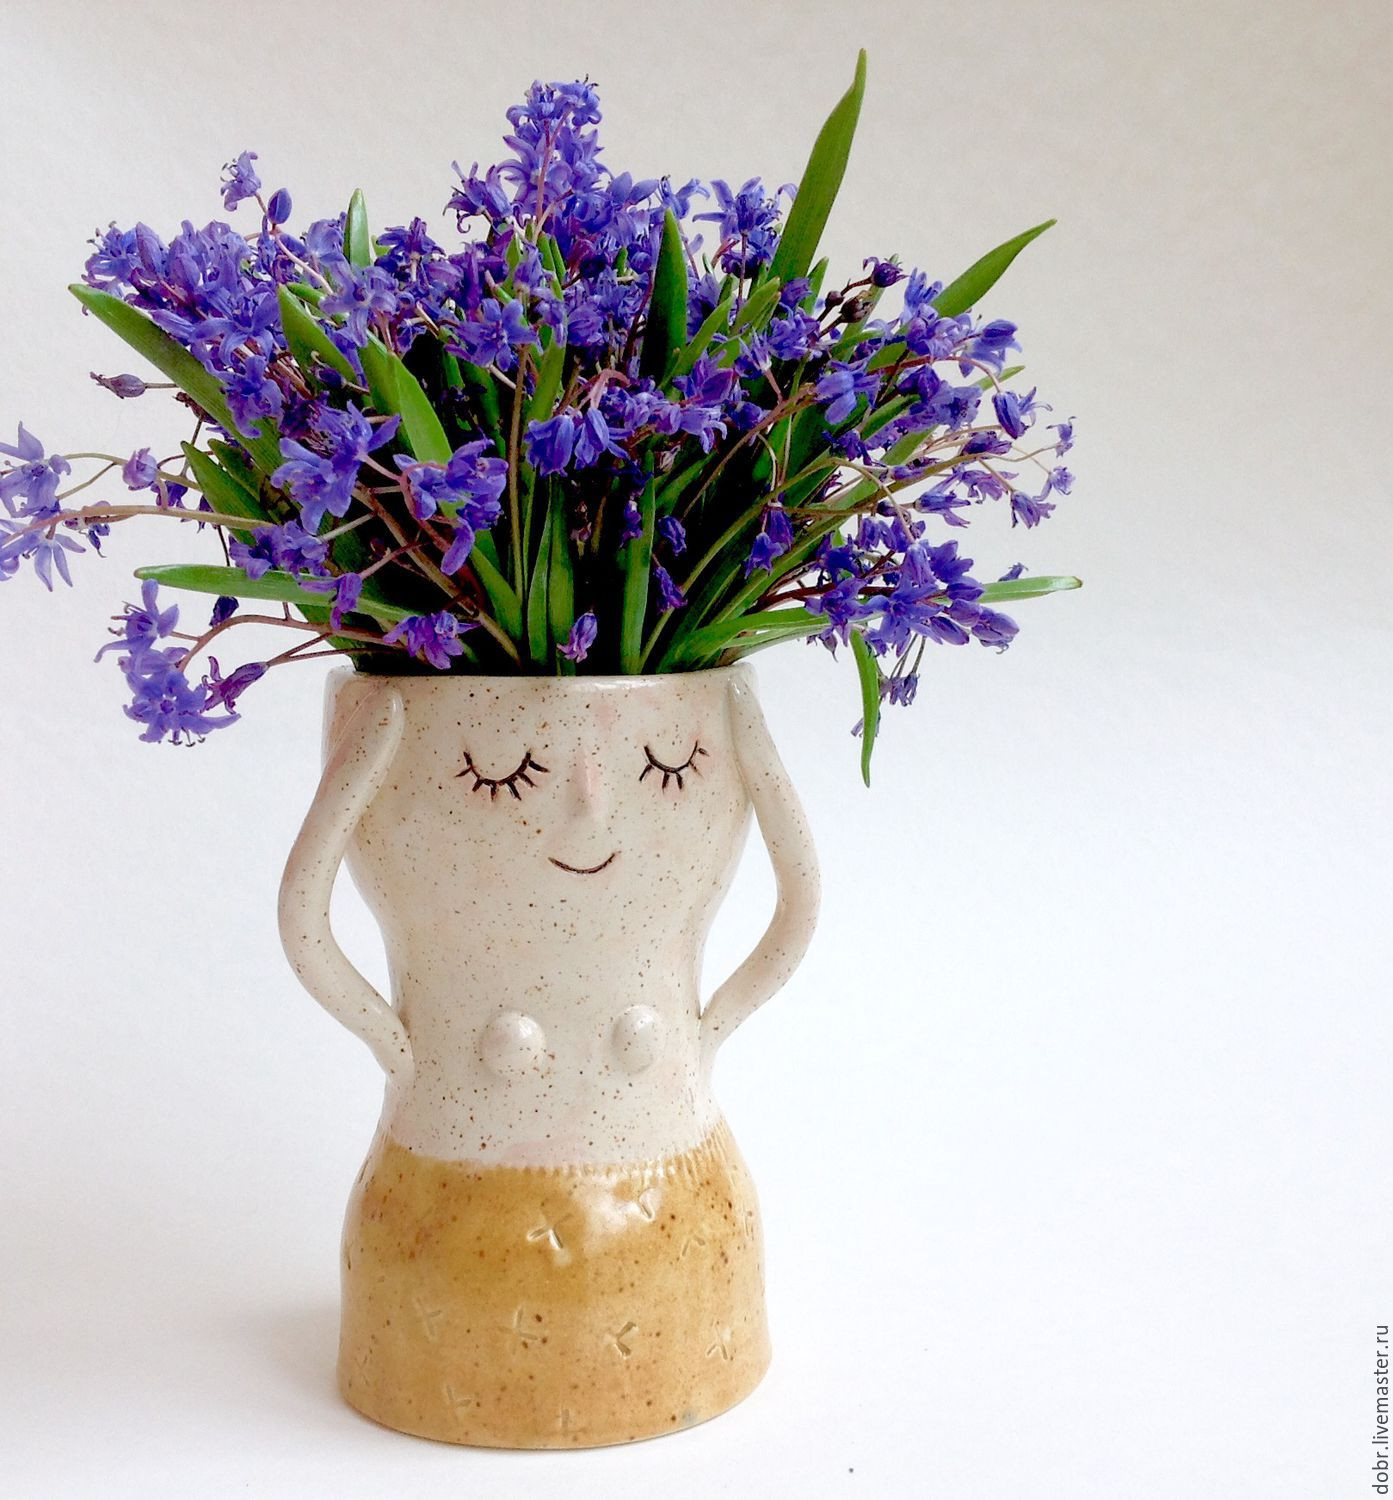 handmade ceramic vases for sale of ceramic vase shop online on livemaster with shipping 2jehdcom for ceramic vase natalia dobrzhanskayadobrceramics online shopping on my a· vases handmade